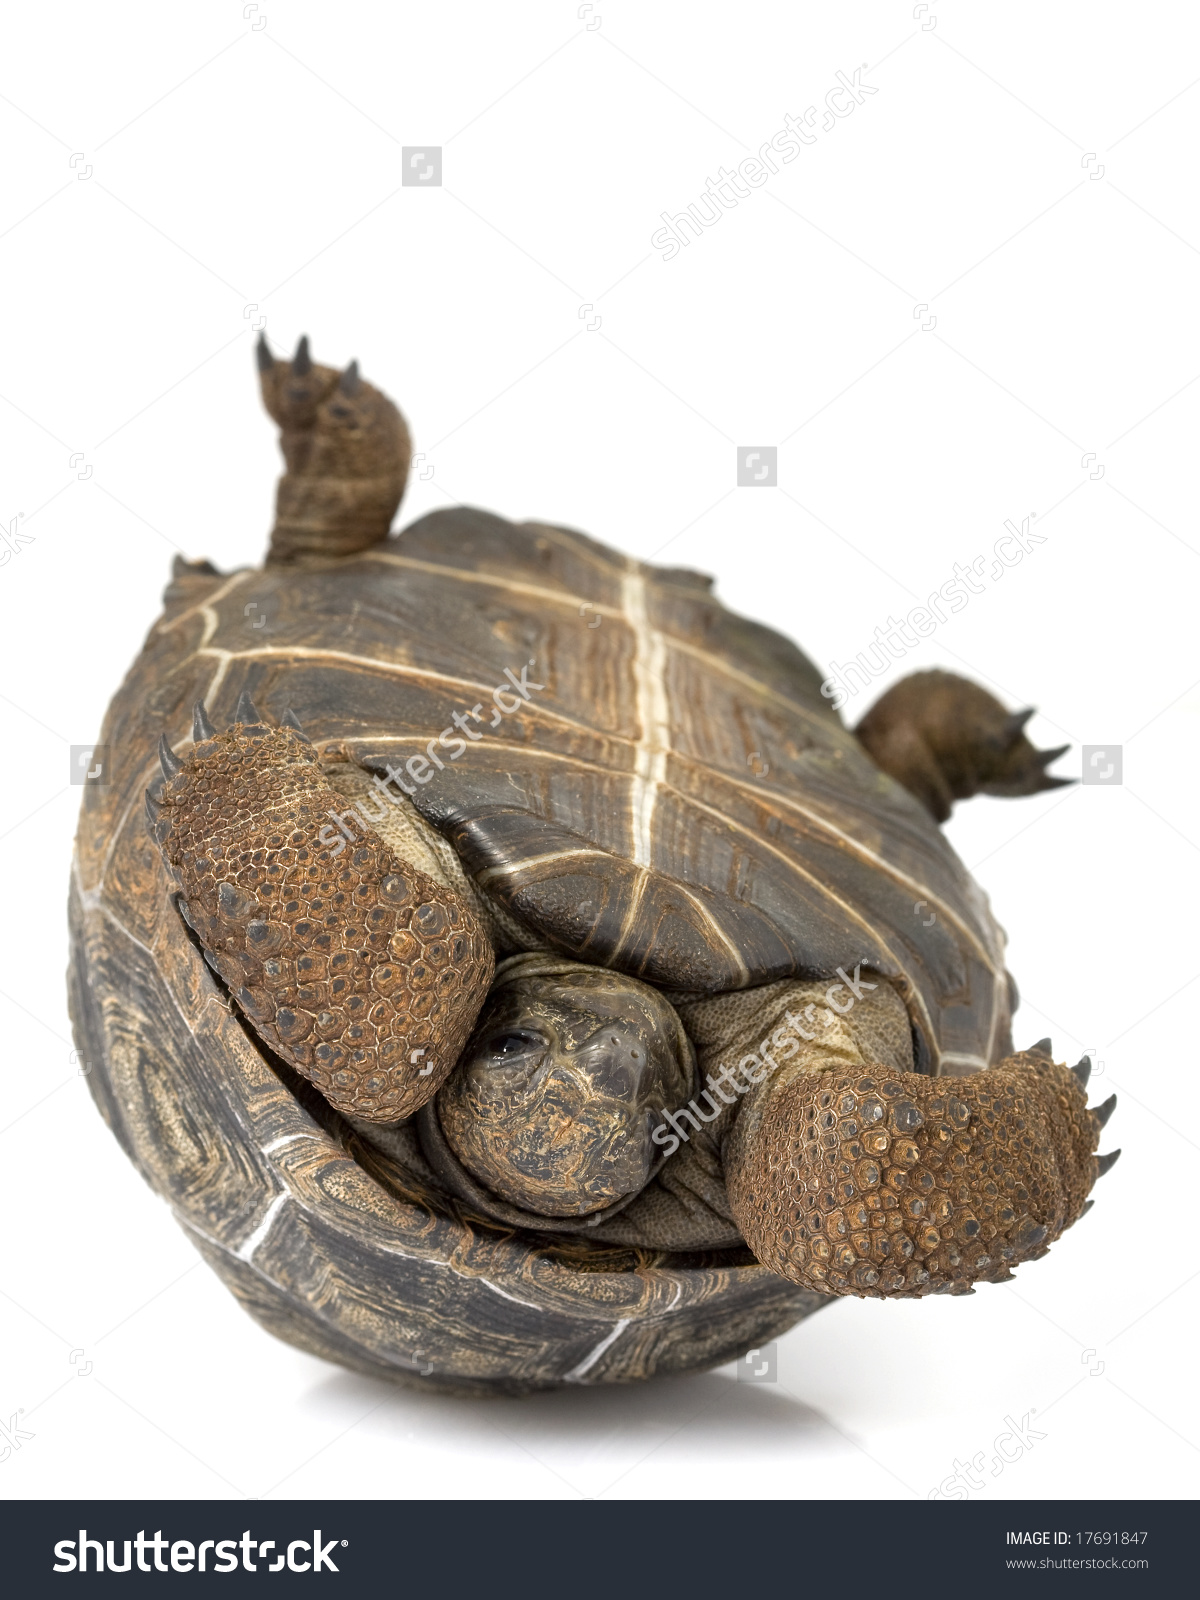 Aldabra Giant Tortoise clipart #1, Download drawings